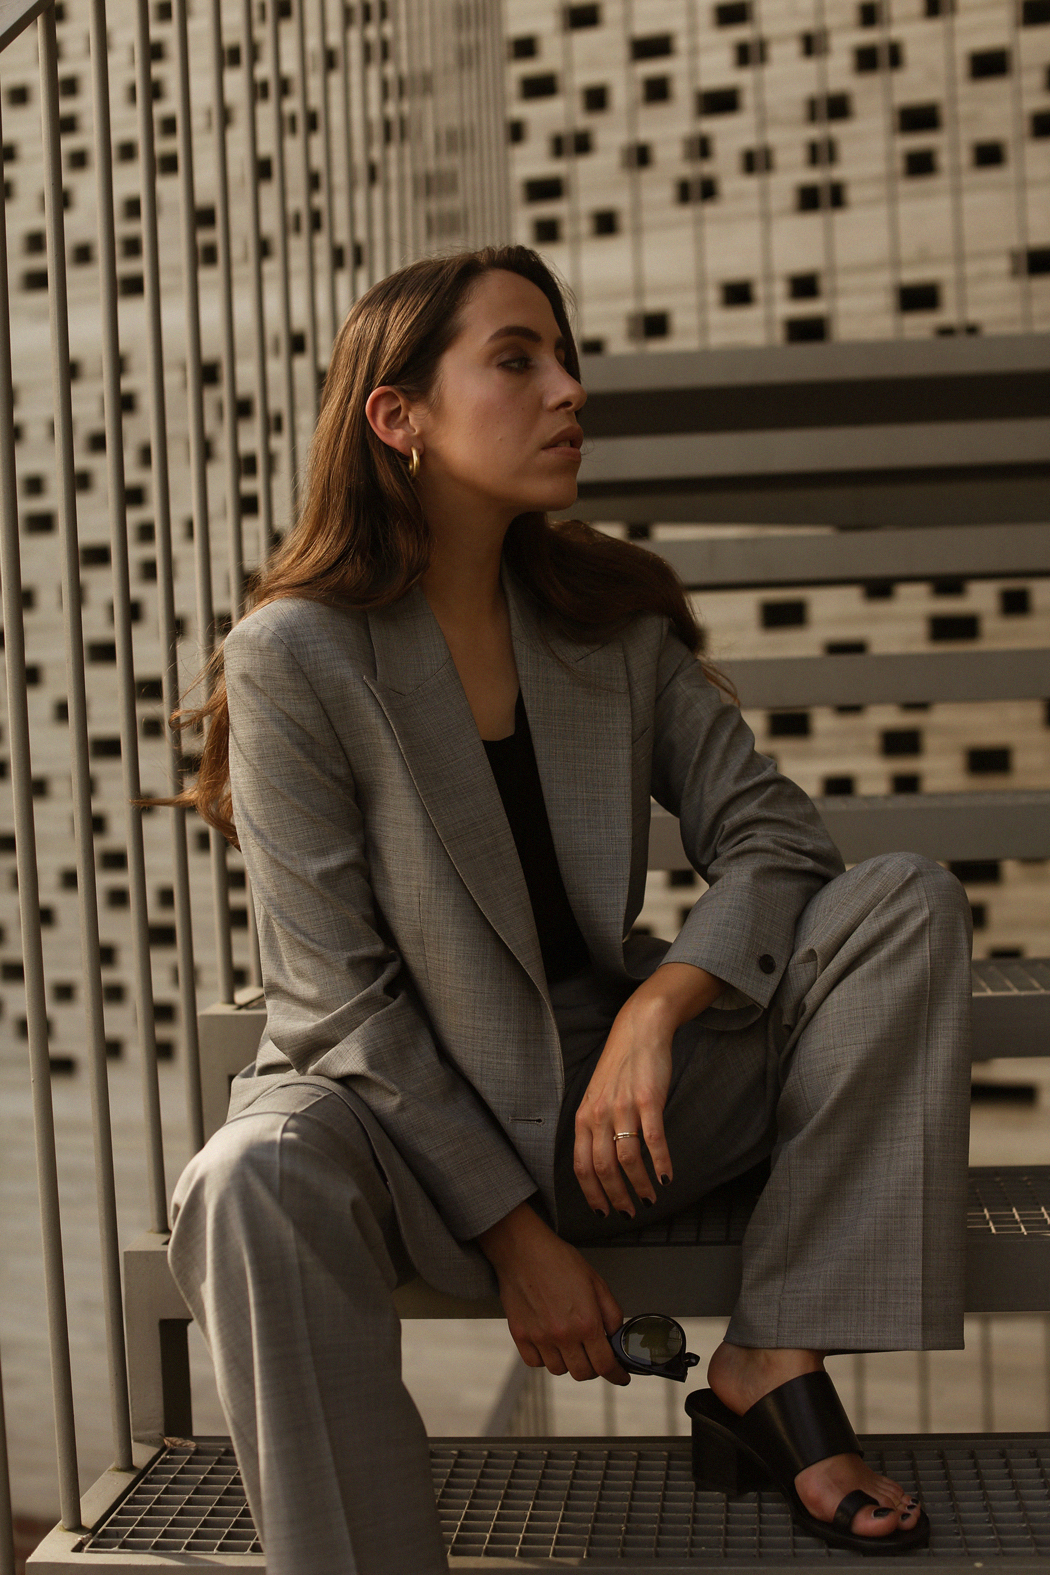 Filippa K Grey Suit - A visual story by Fiona Dinkelbach